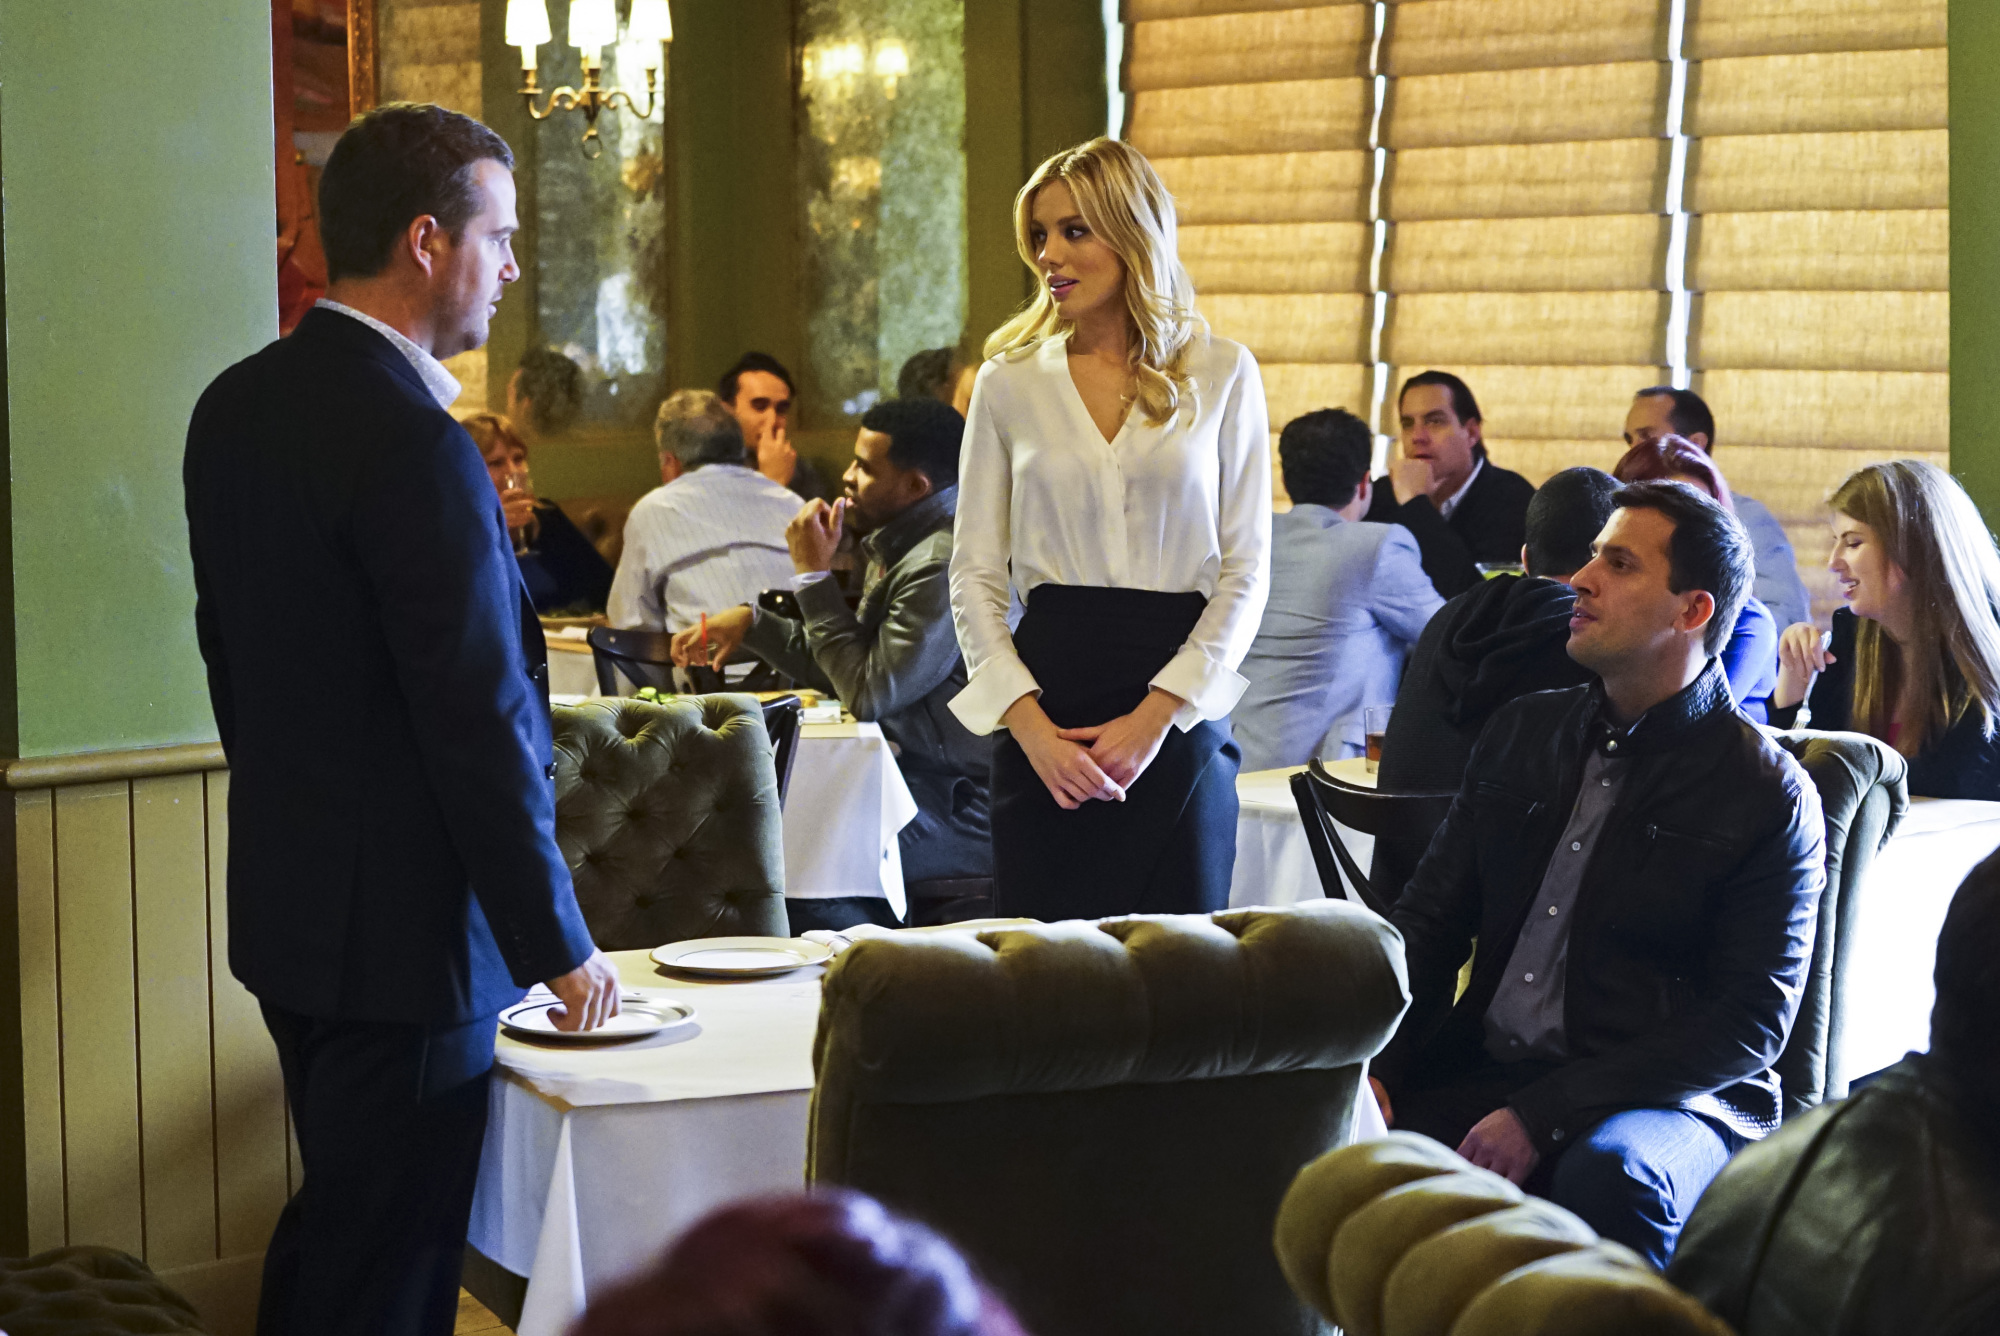 Chris O'Donnell as Special Agent G. Callen, Bar Paly as Anastasia